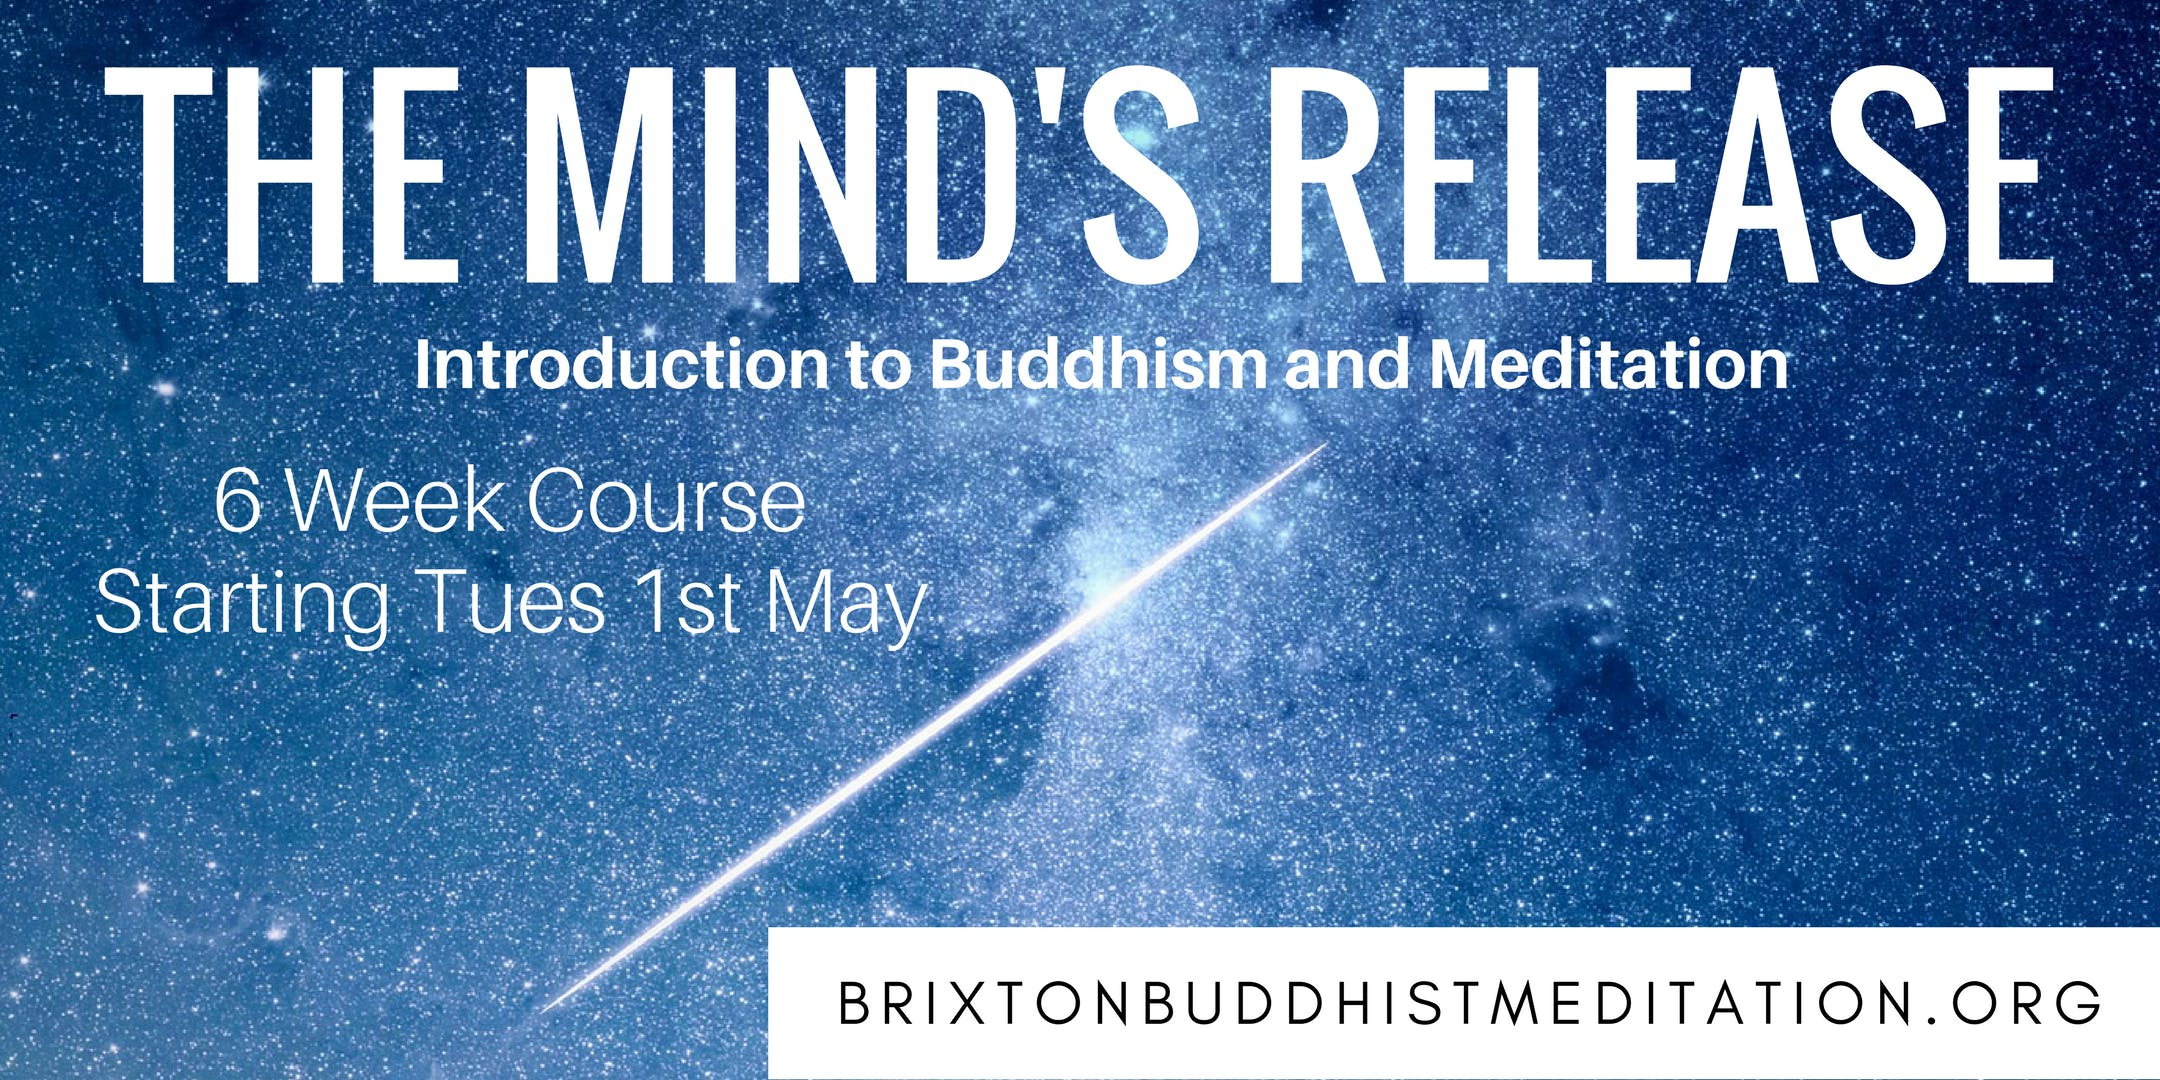 The Minds Release - Introduction to Buddhism and Meditation